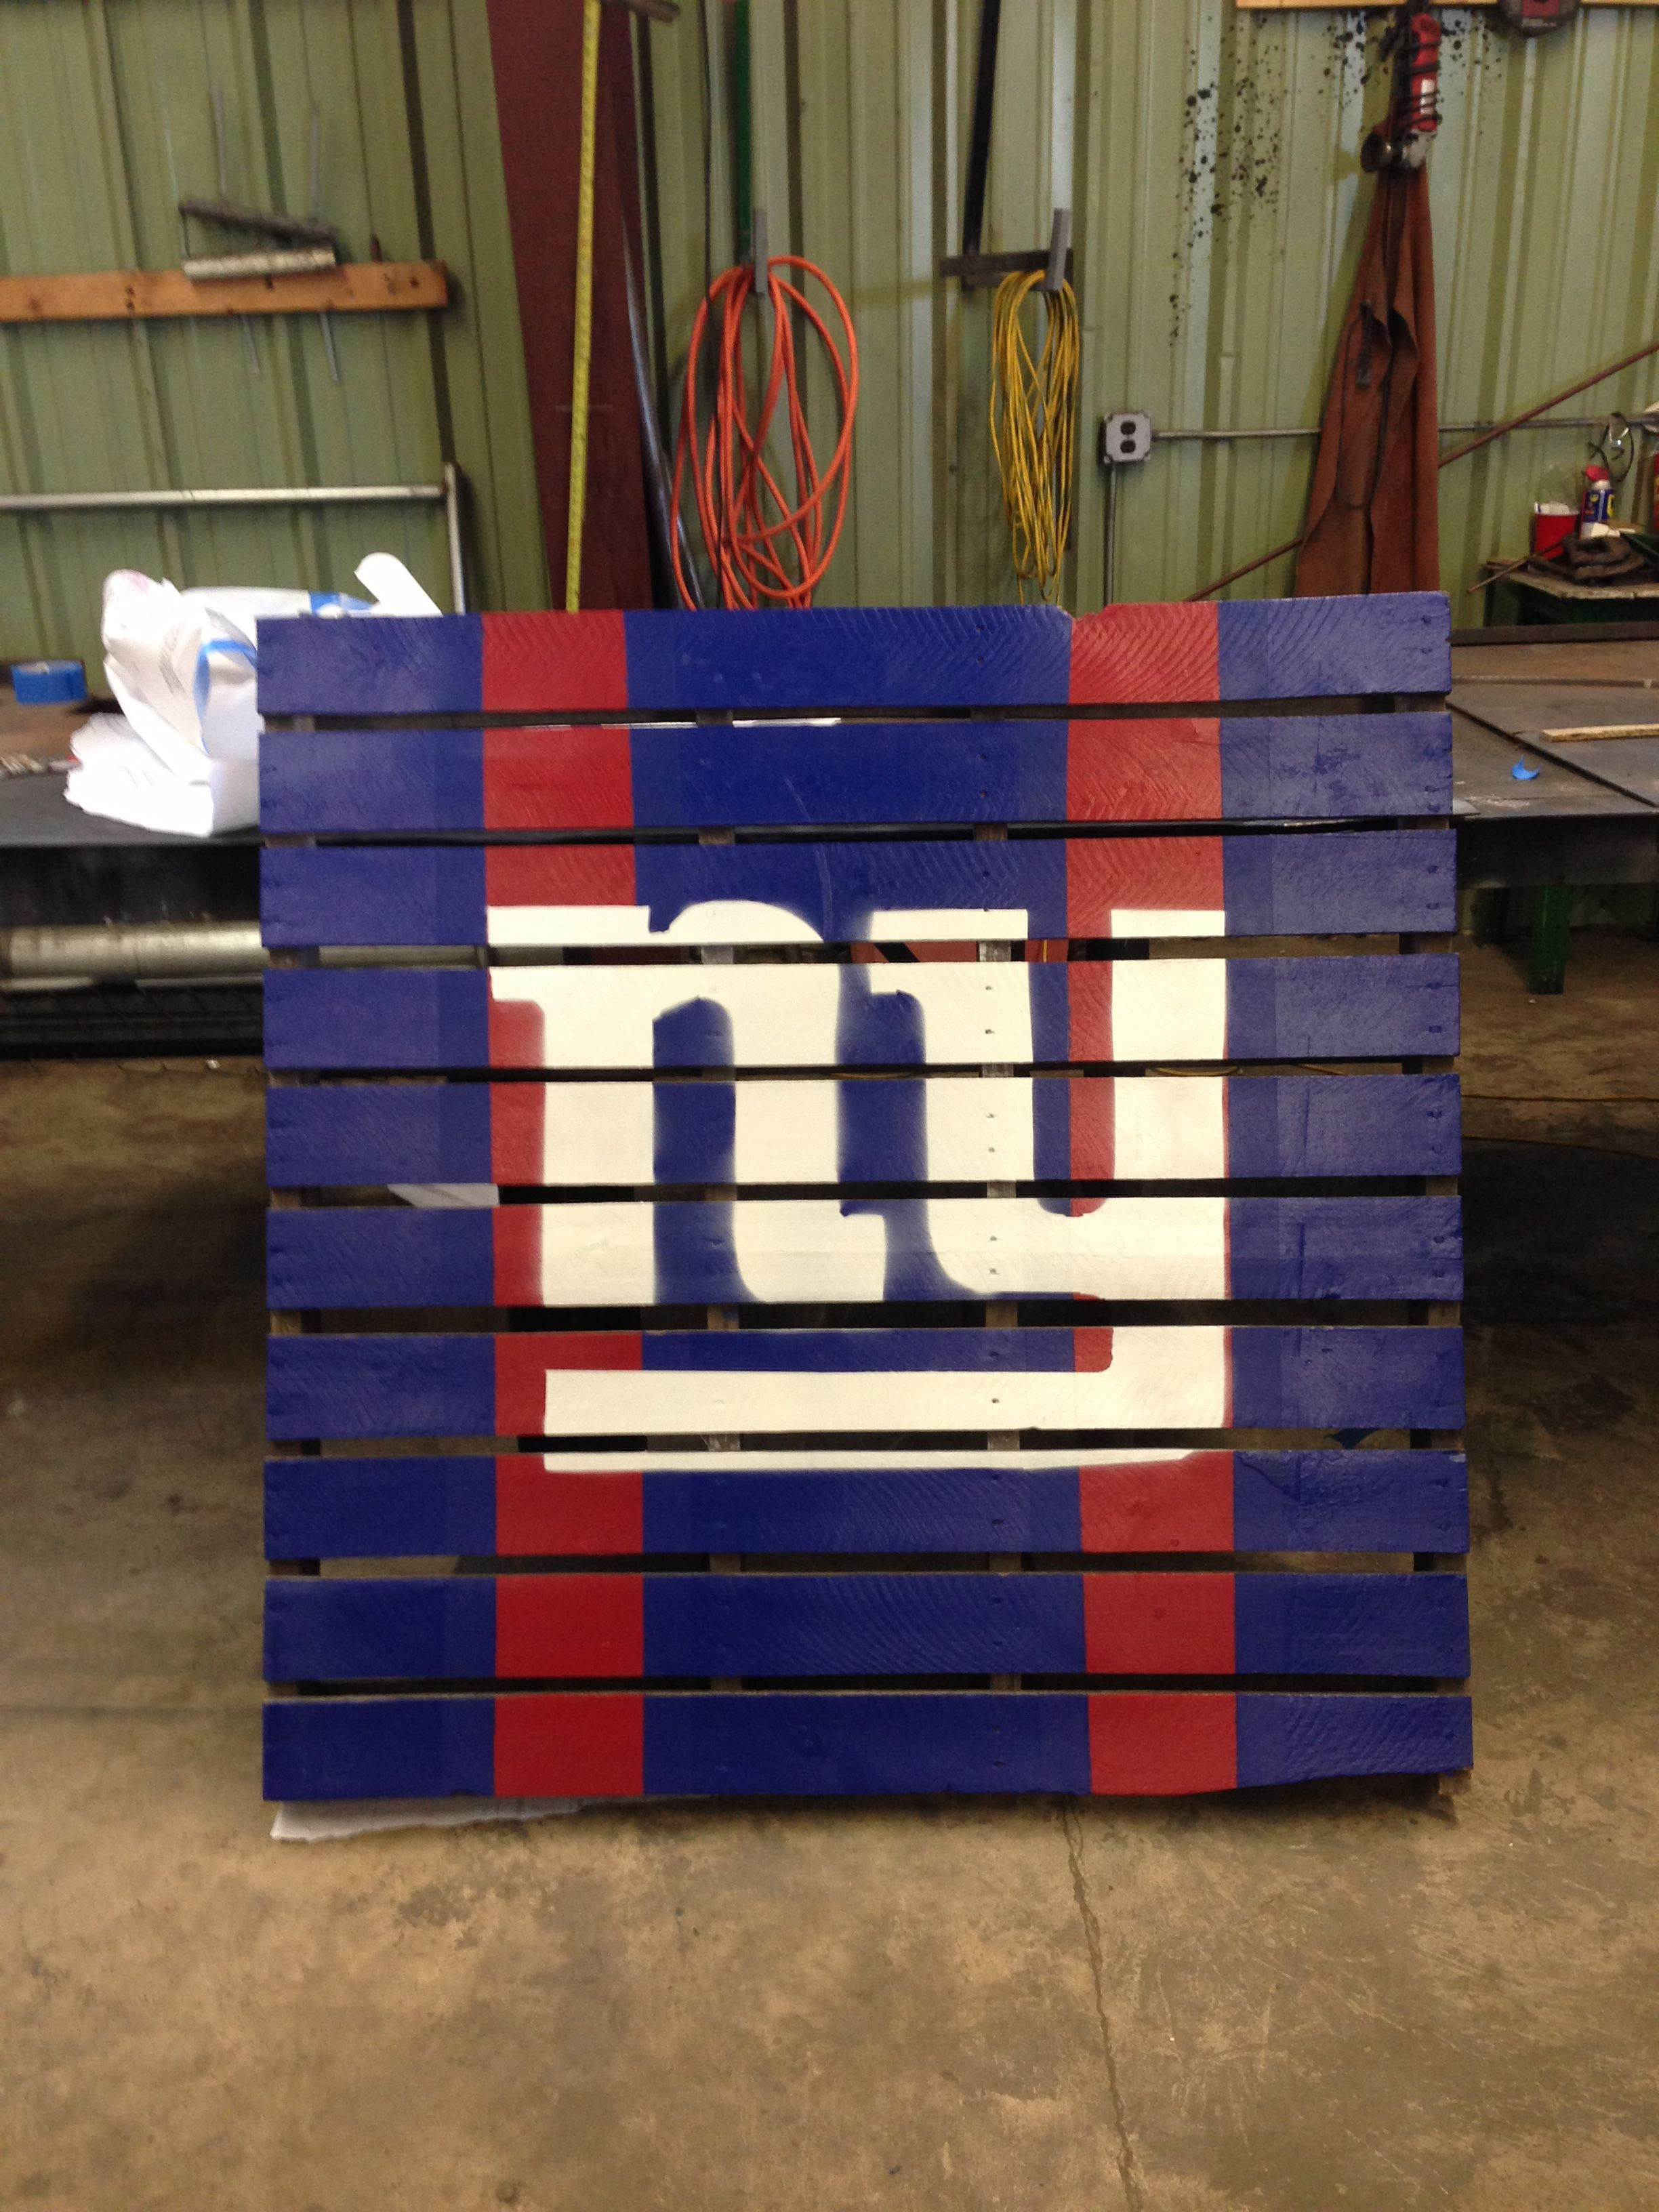 New York Giants Pallet Giants Decor Diy Wooden Projects Sports Decorations